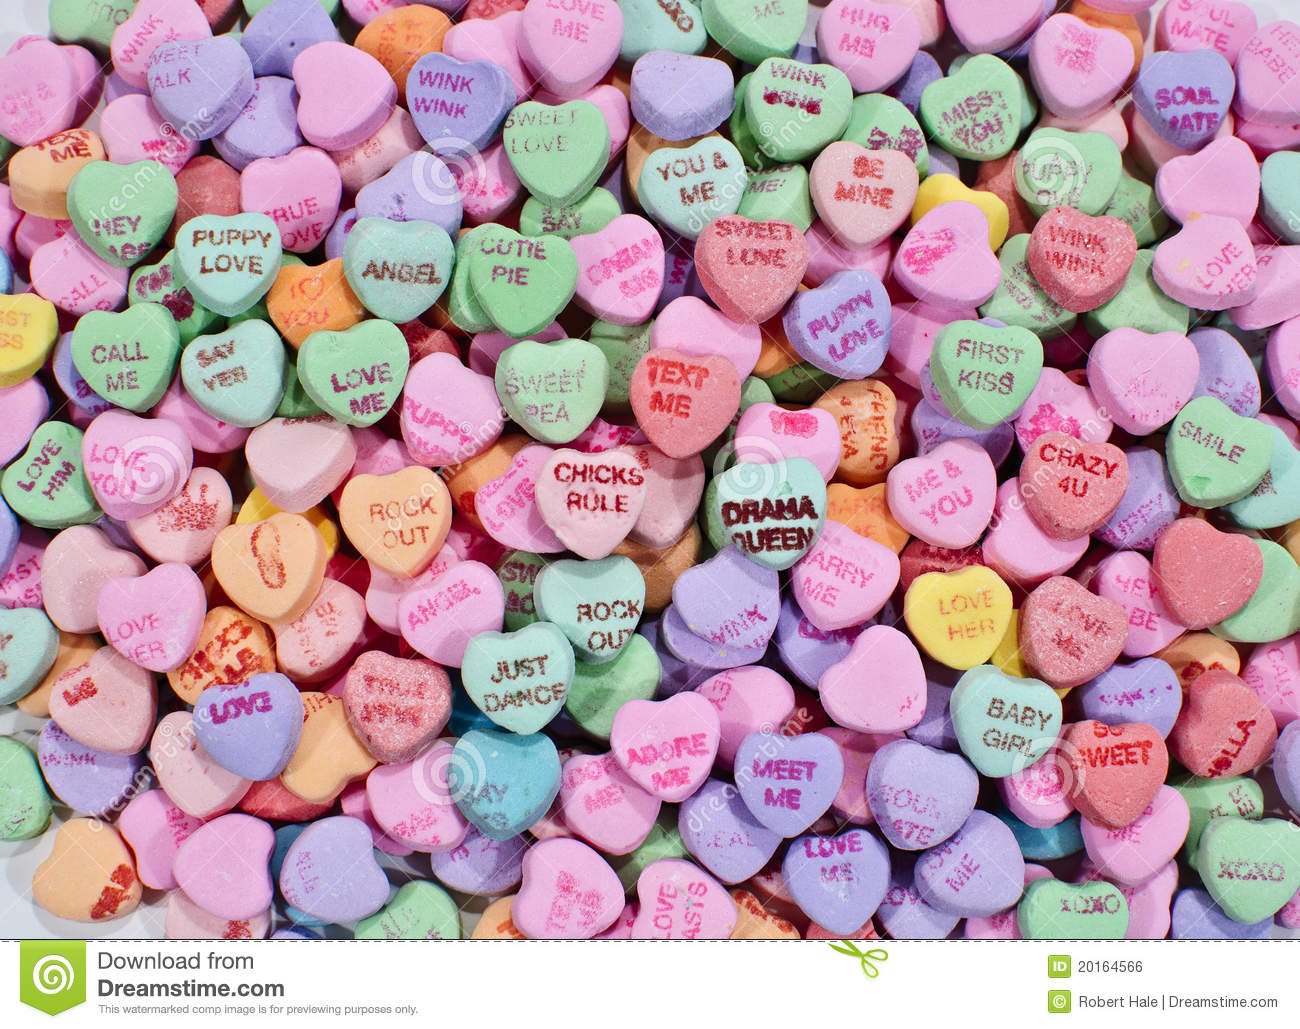 conversation candy hearts stock photo. image of candy - 20164566